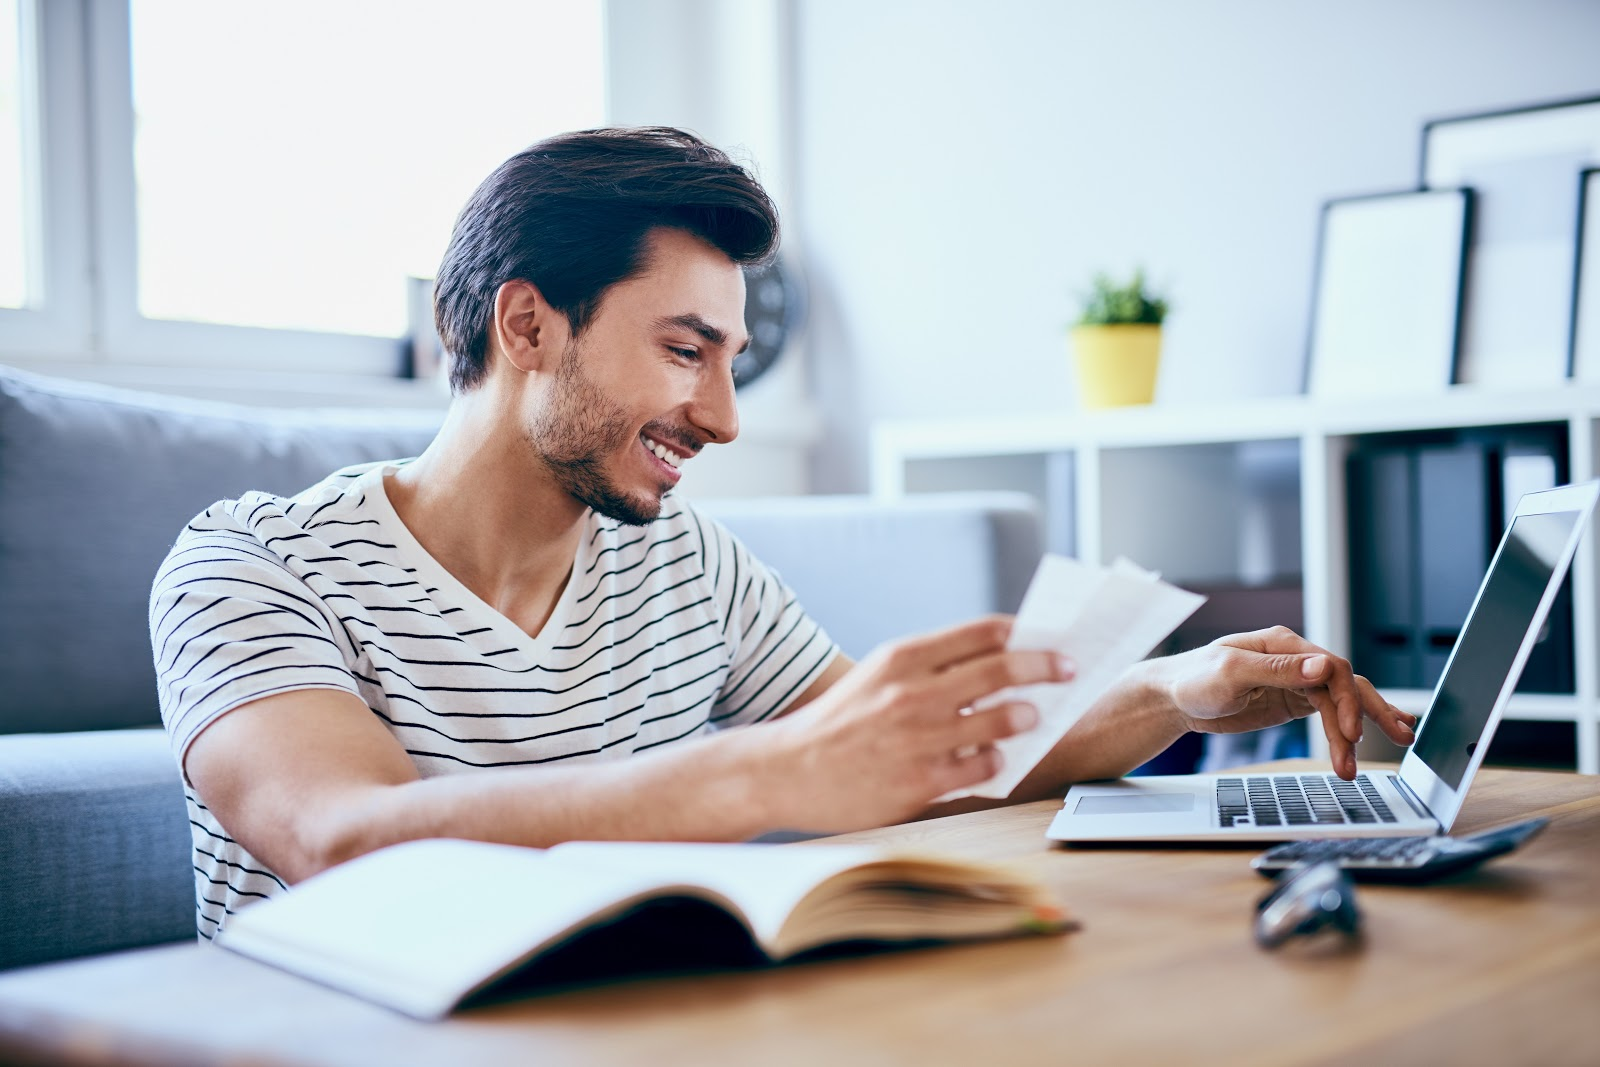 A smiling man pays his bills online